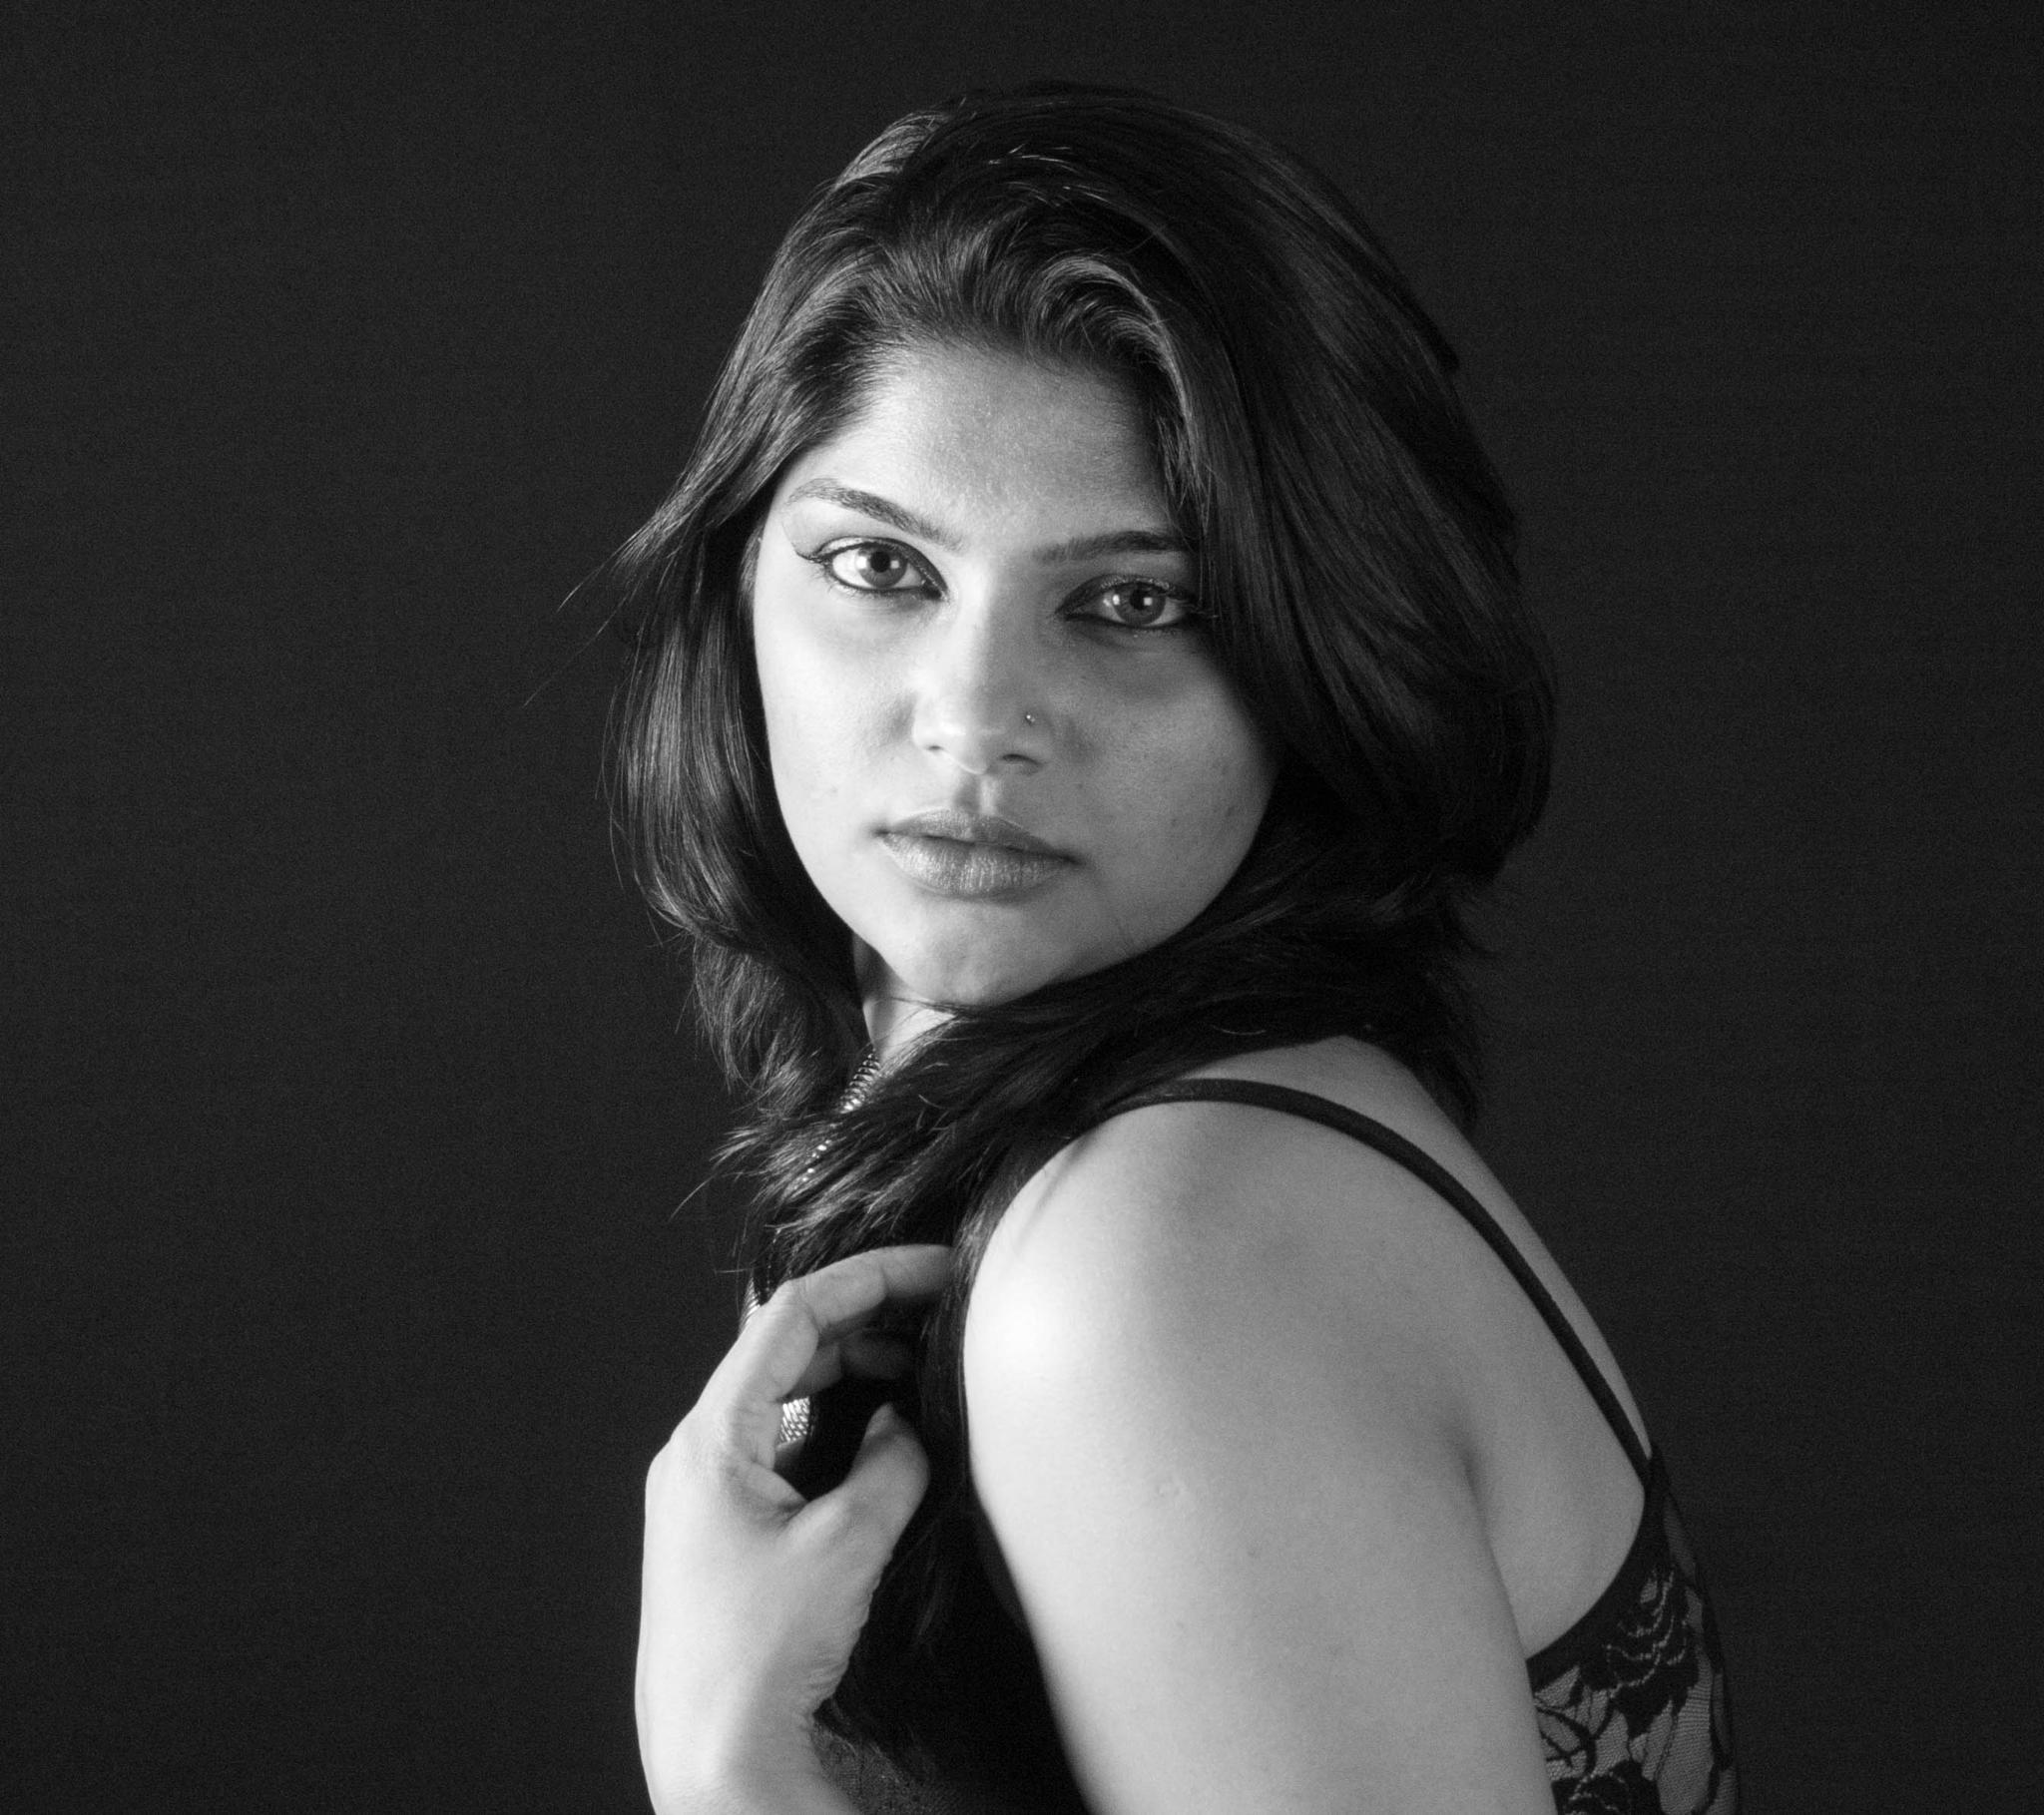 Beauty in Black and White by prashanth r